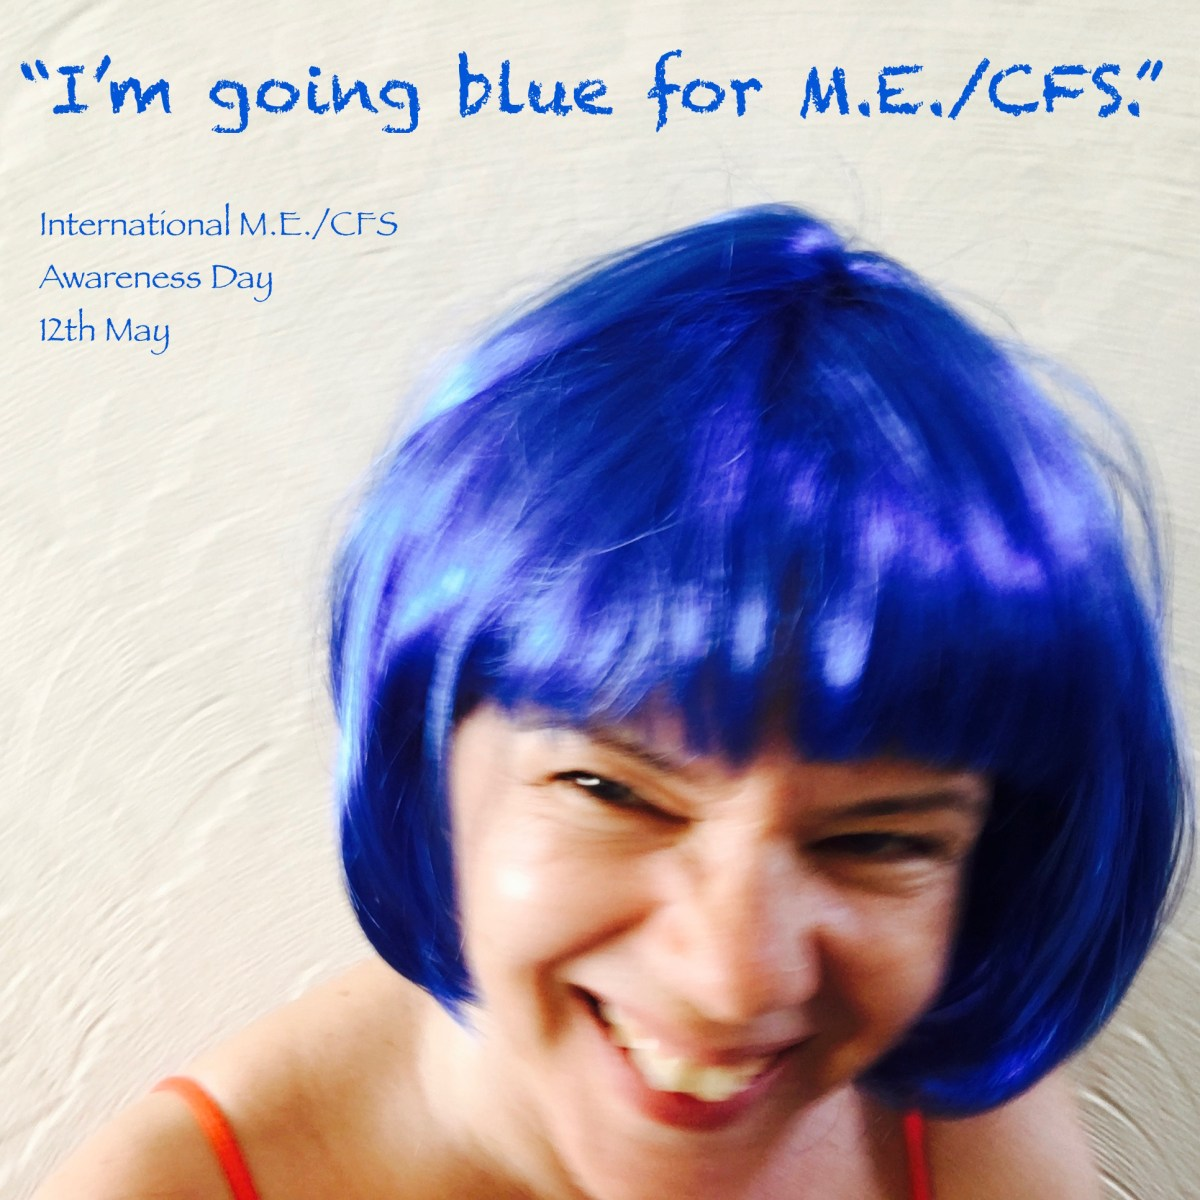 Going blue for M.E./CFS